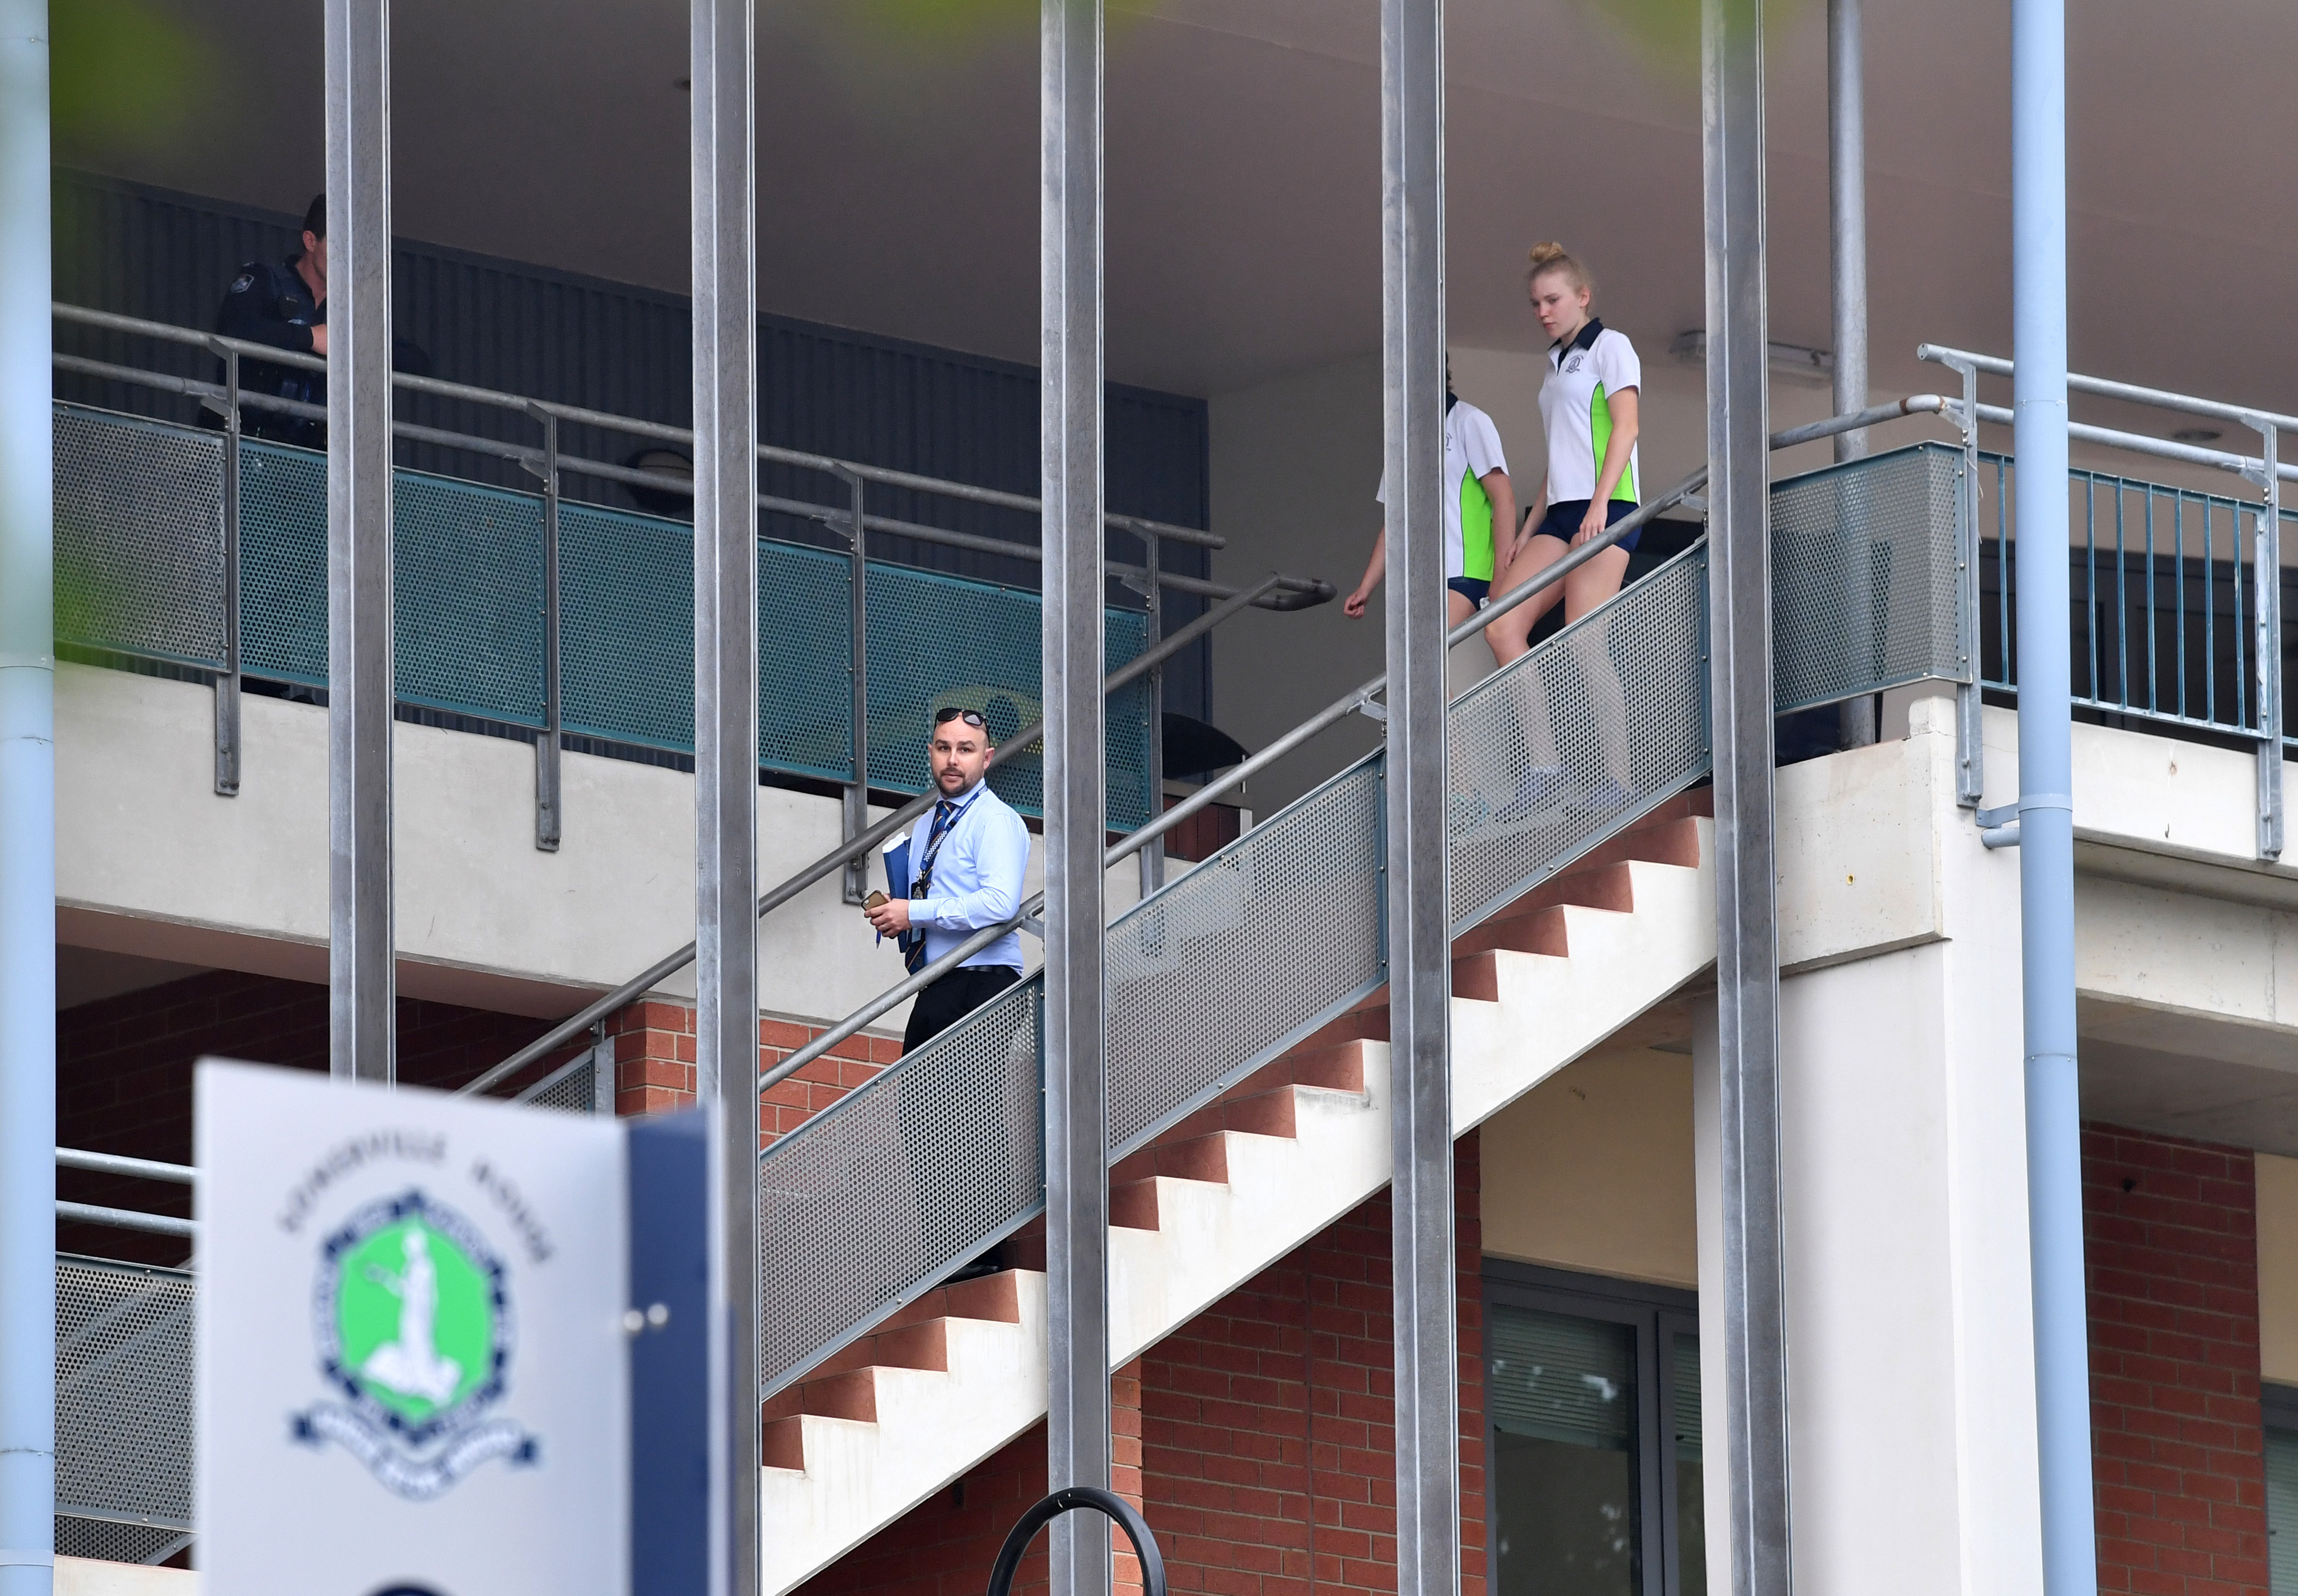 Officers have been at the Brisbane school through the morning. (AAP)